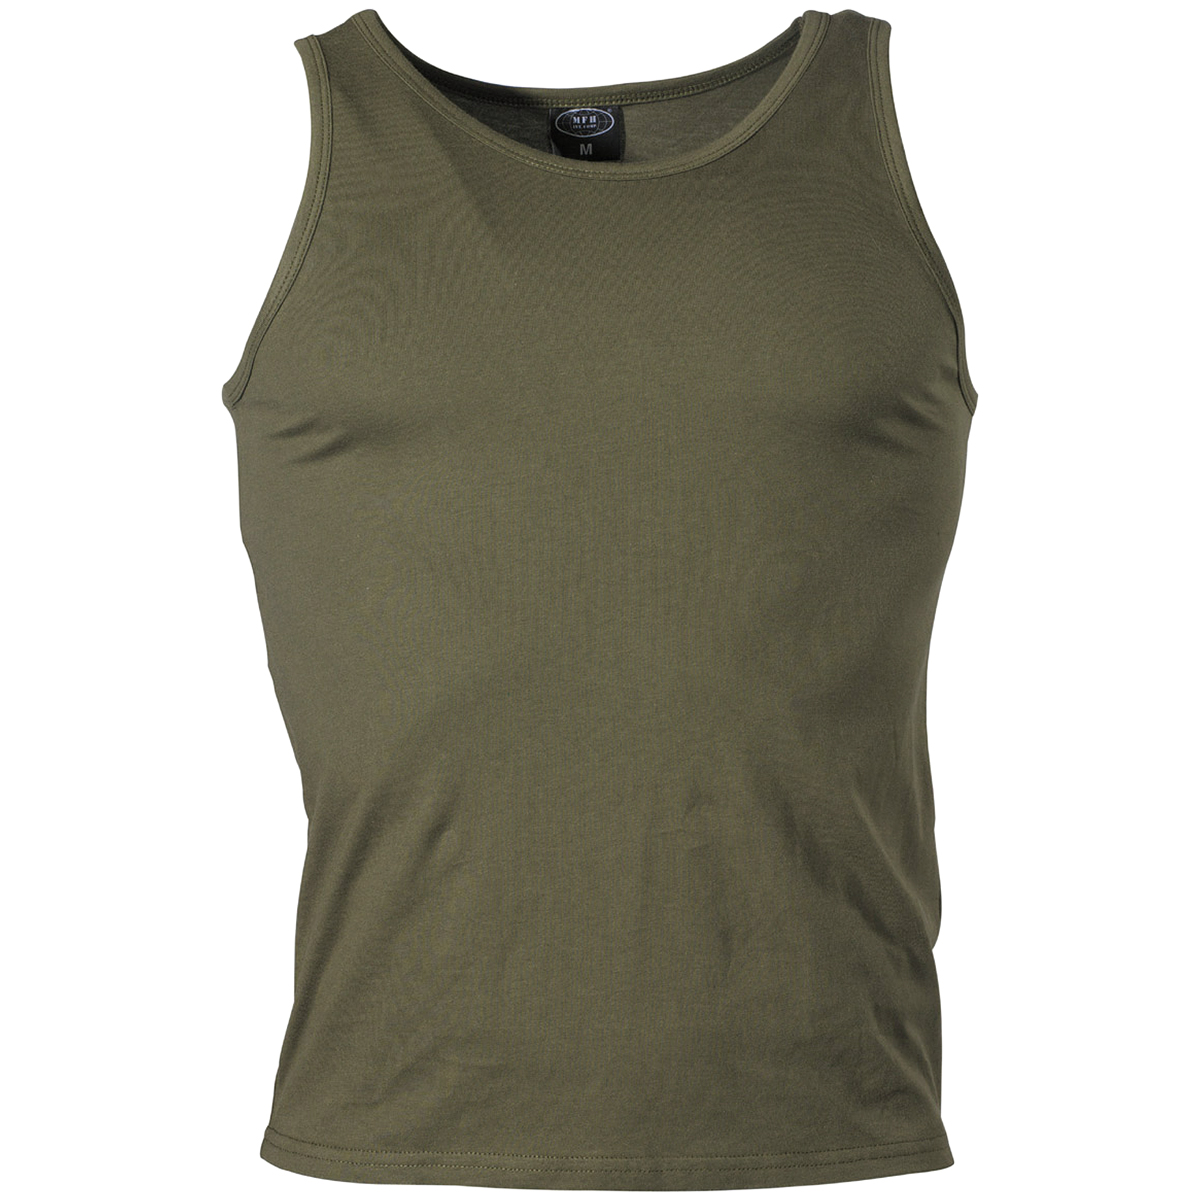 Find great deals on eBay for us army vest. Shop with confidence.